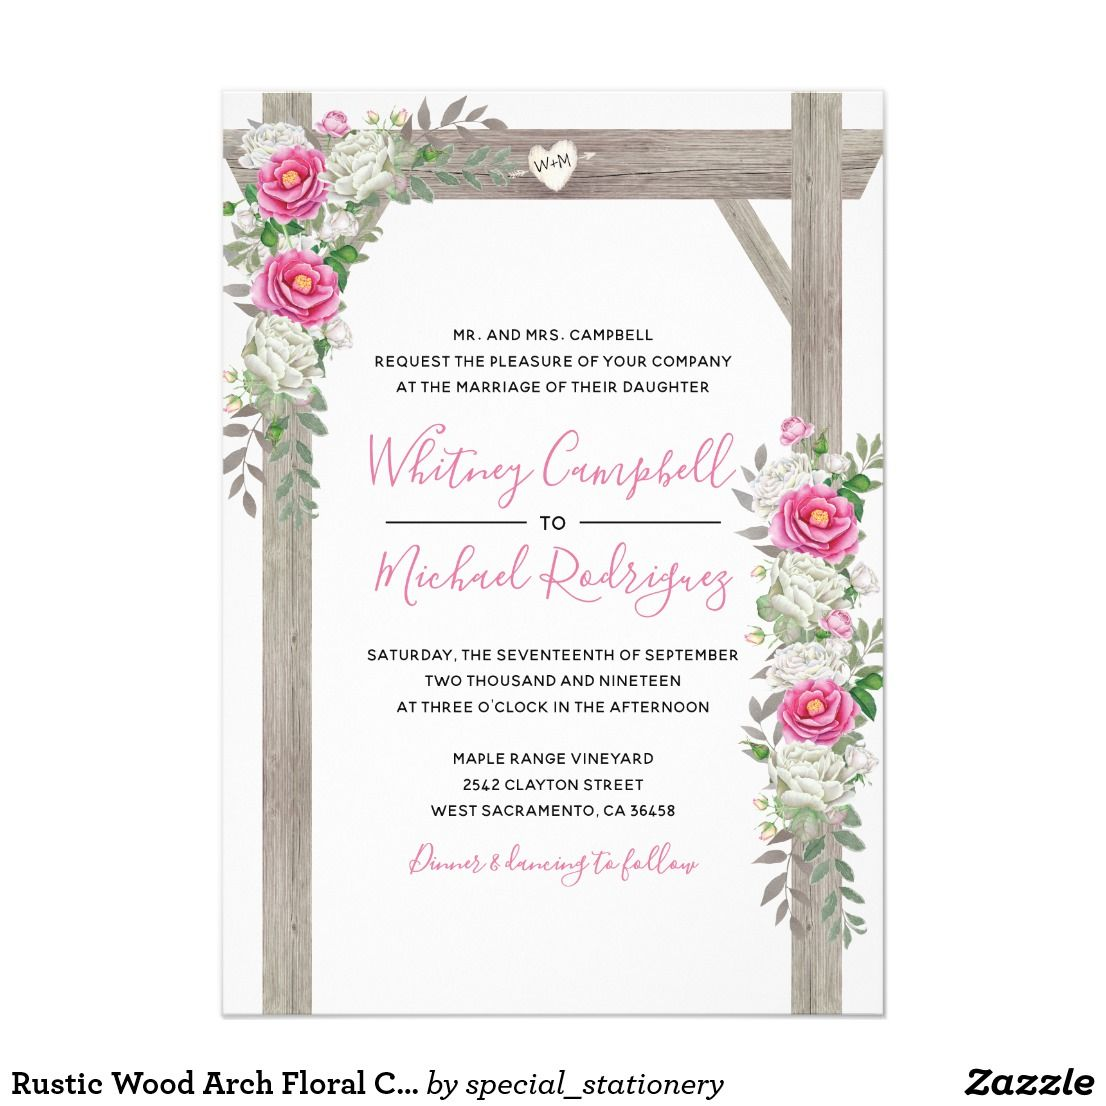 Rustic Chic Floral WEDDING INVITATION Roses Flowers Wood Arch Chic